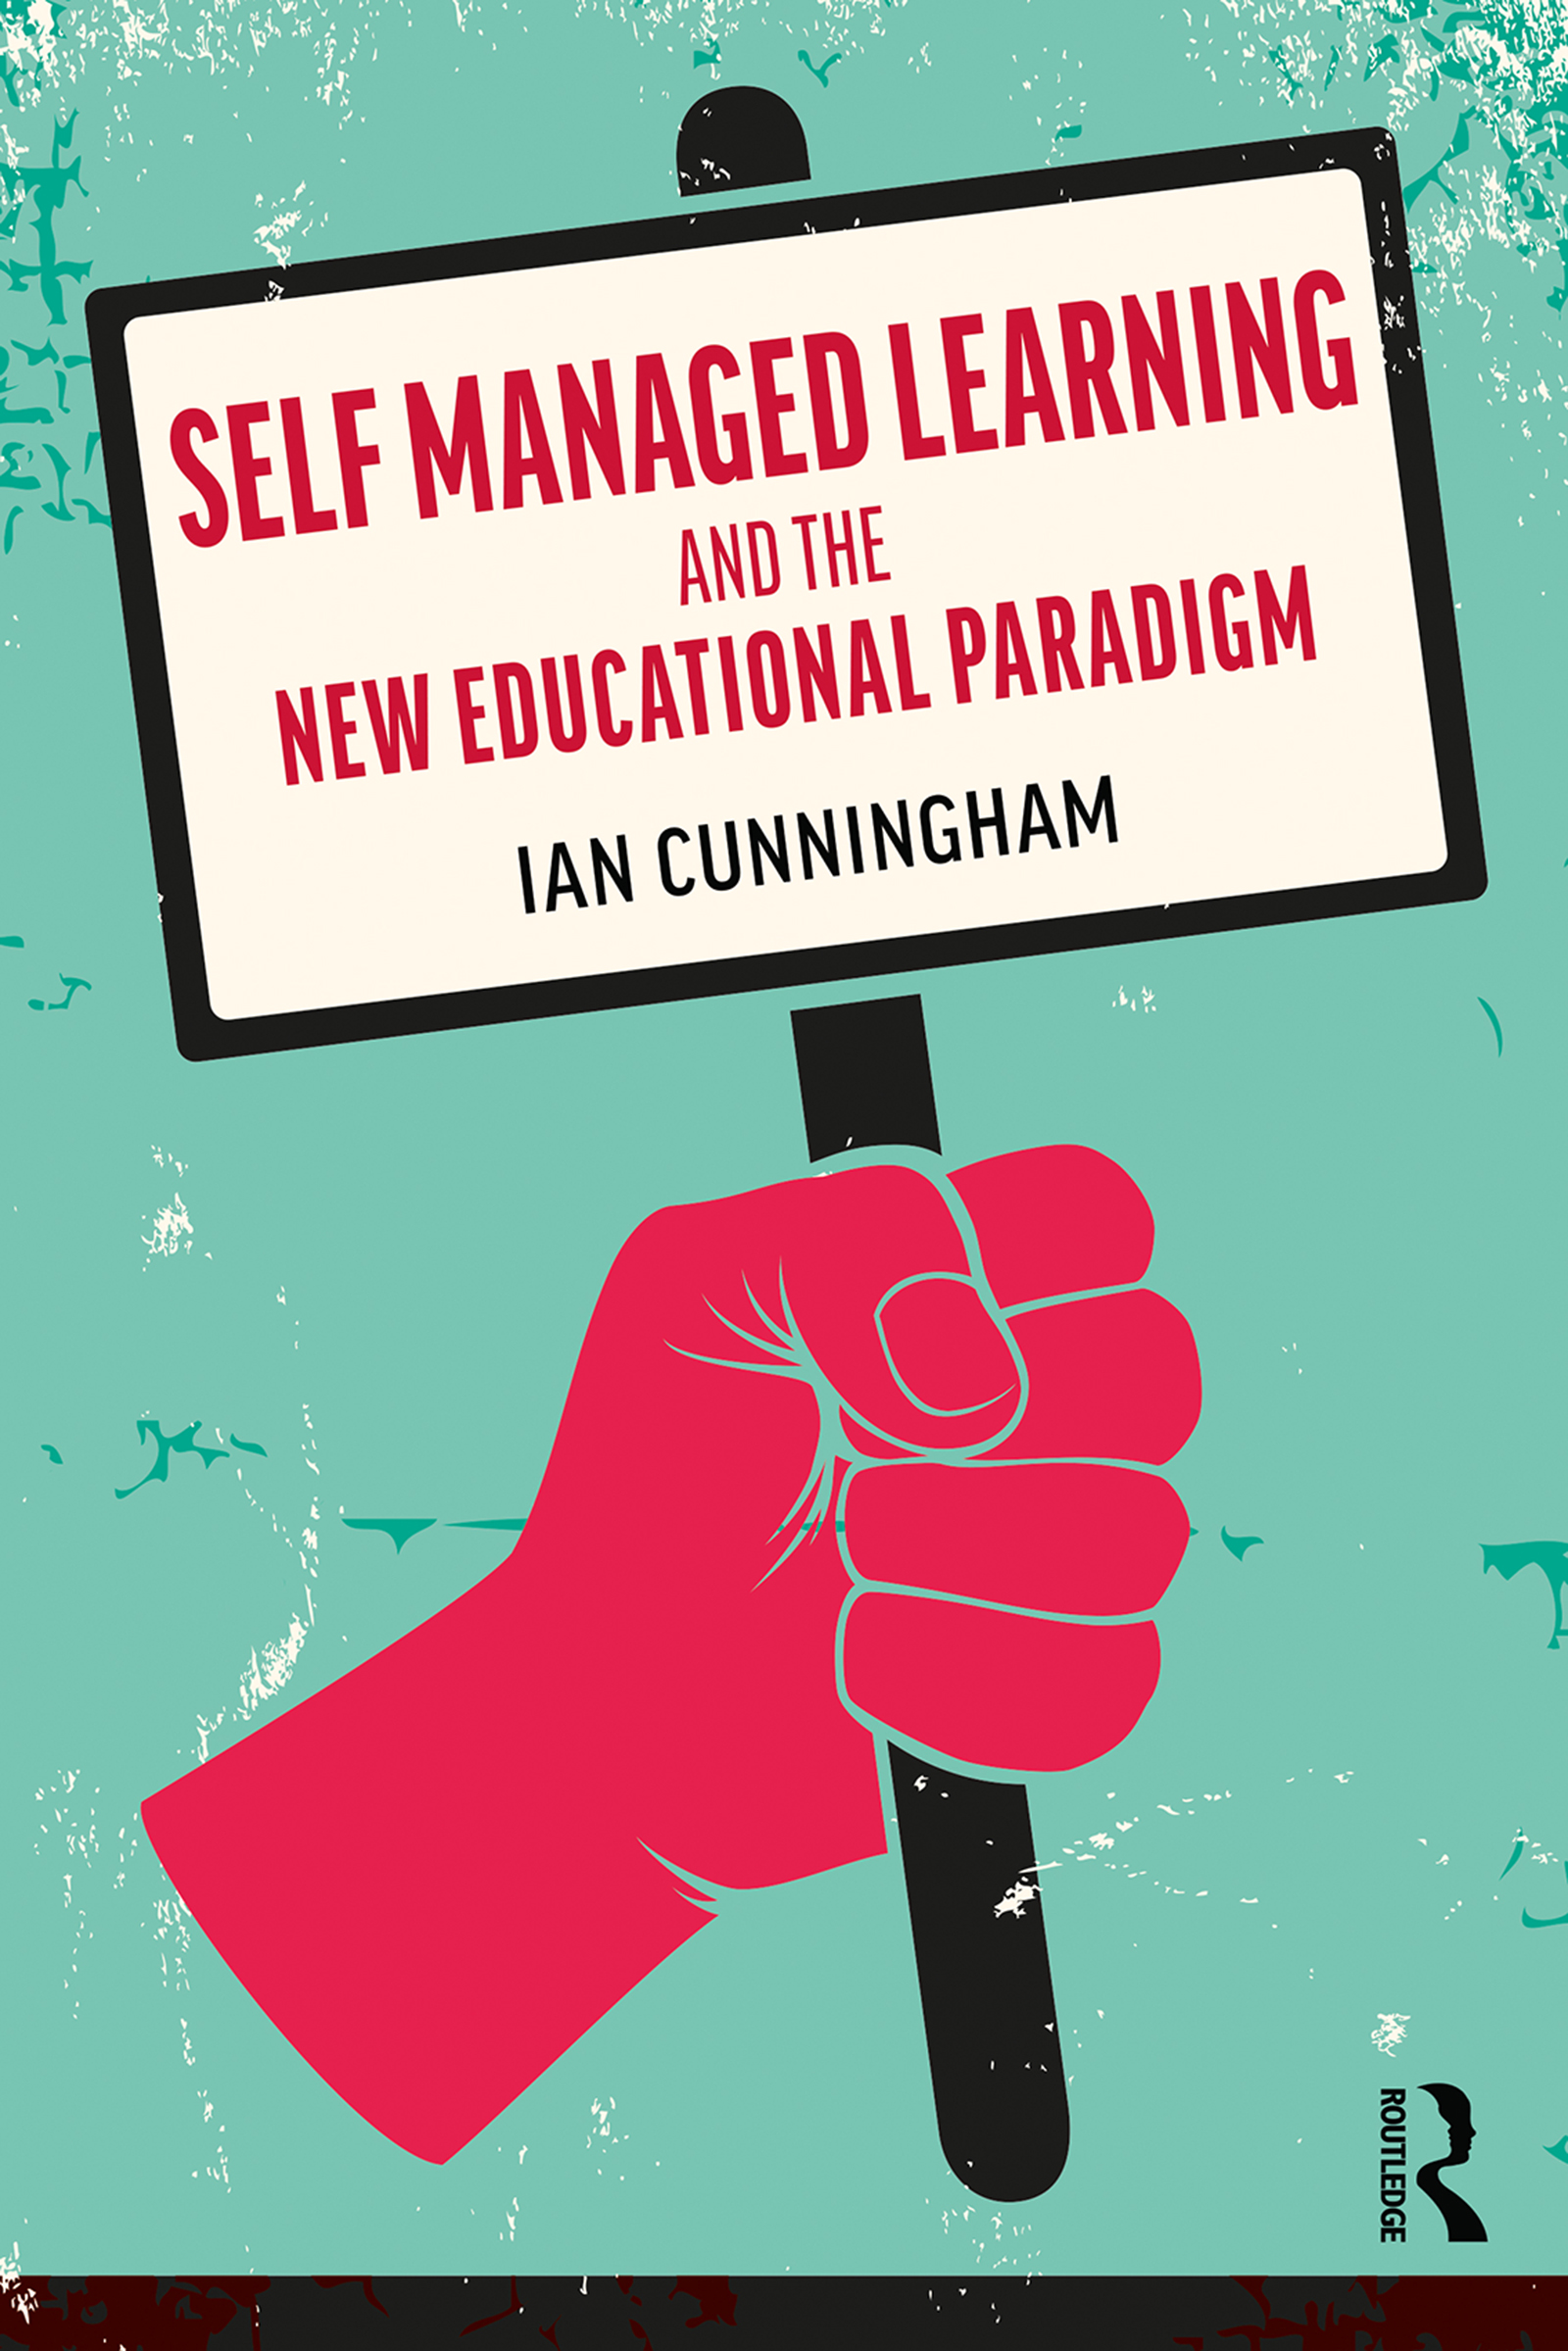 Self Managed Learning and the New Educational Paradigm